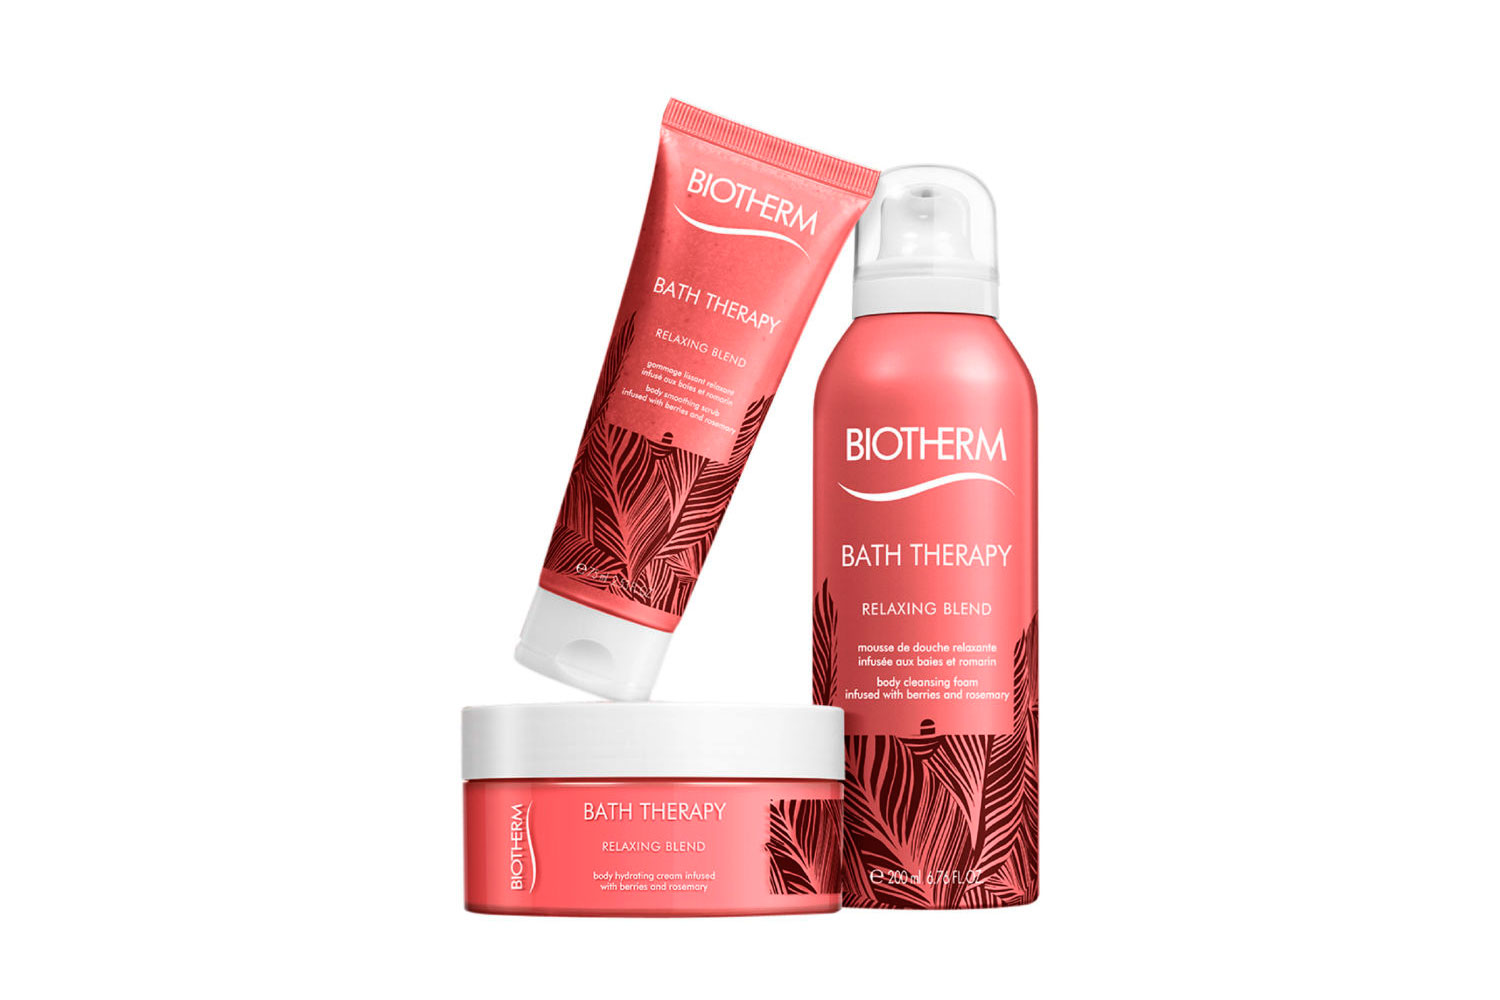 Bath Therapy de Biotherm - relaxing blend